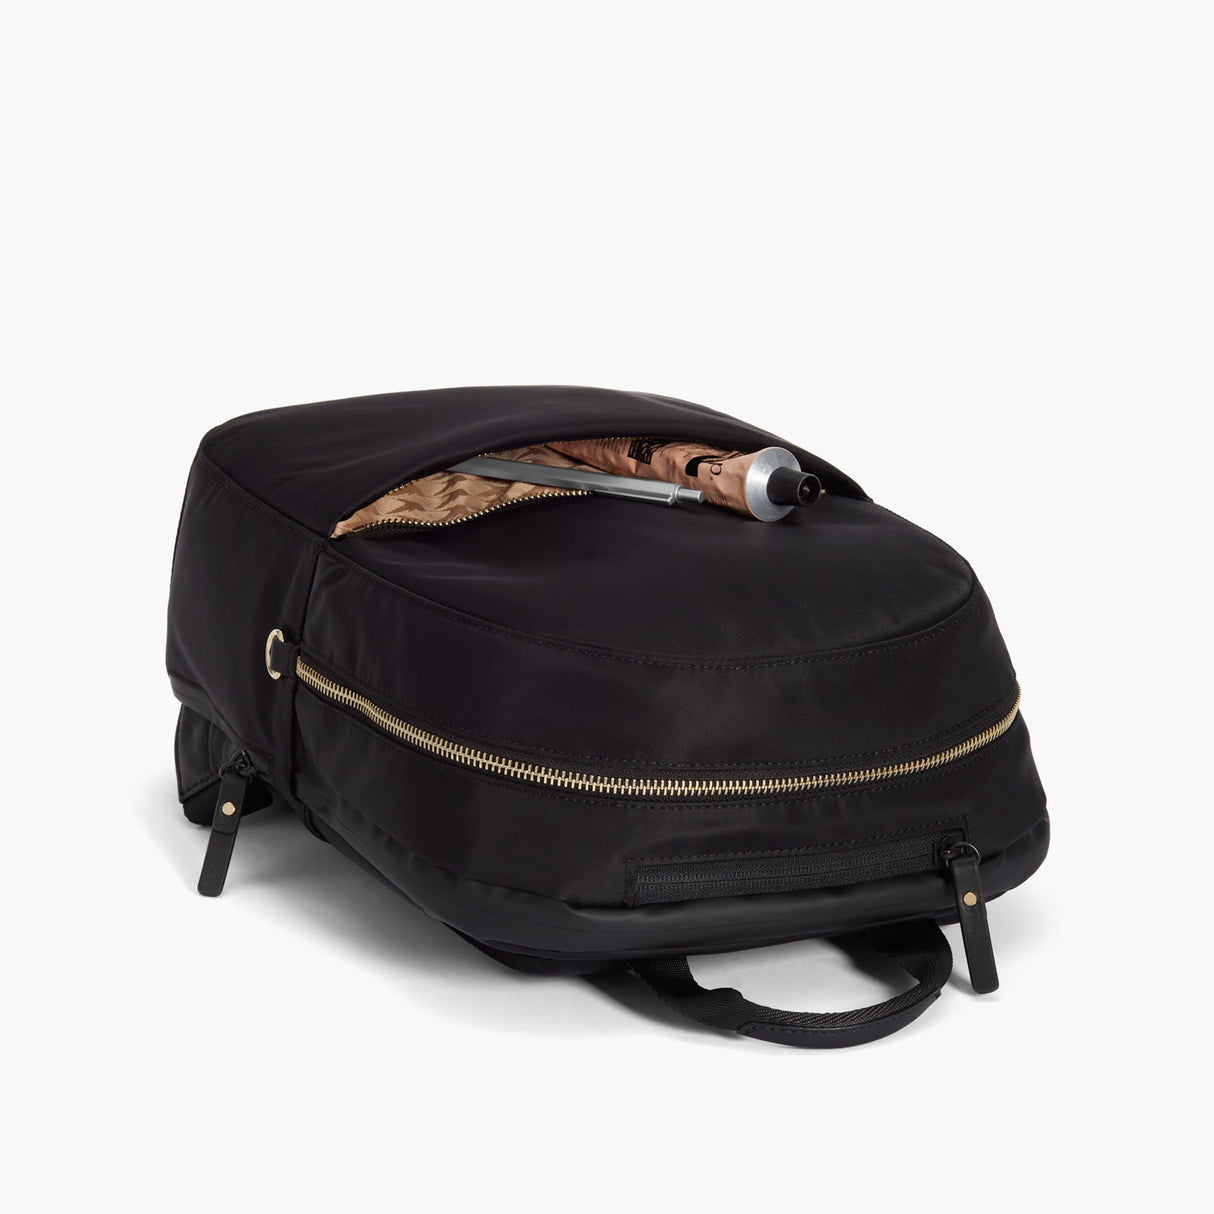 Front Pocket - Beacon - Nylon - Black / Gold / Camel - Backpack - Lo & Sons